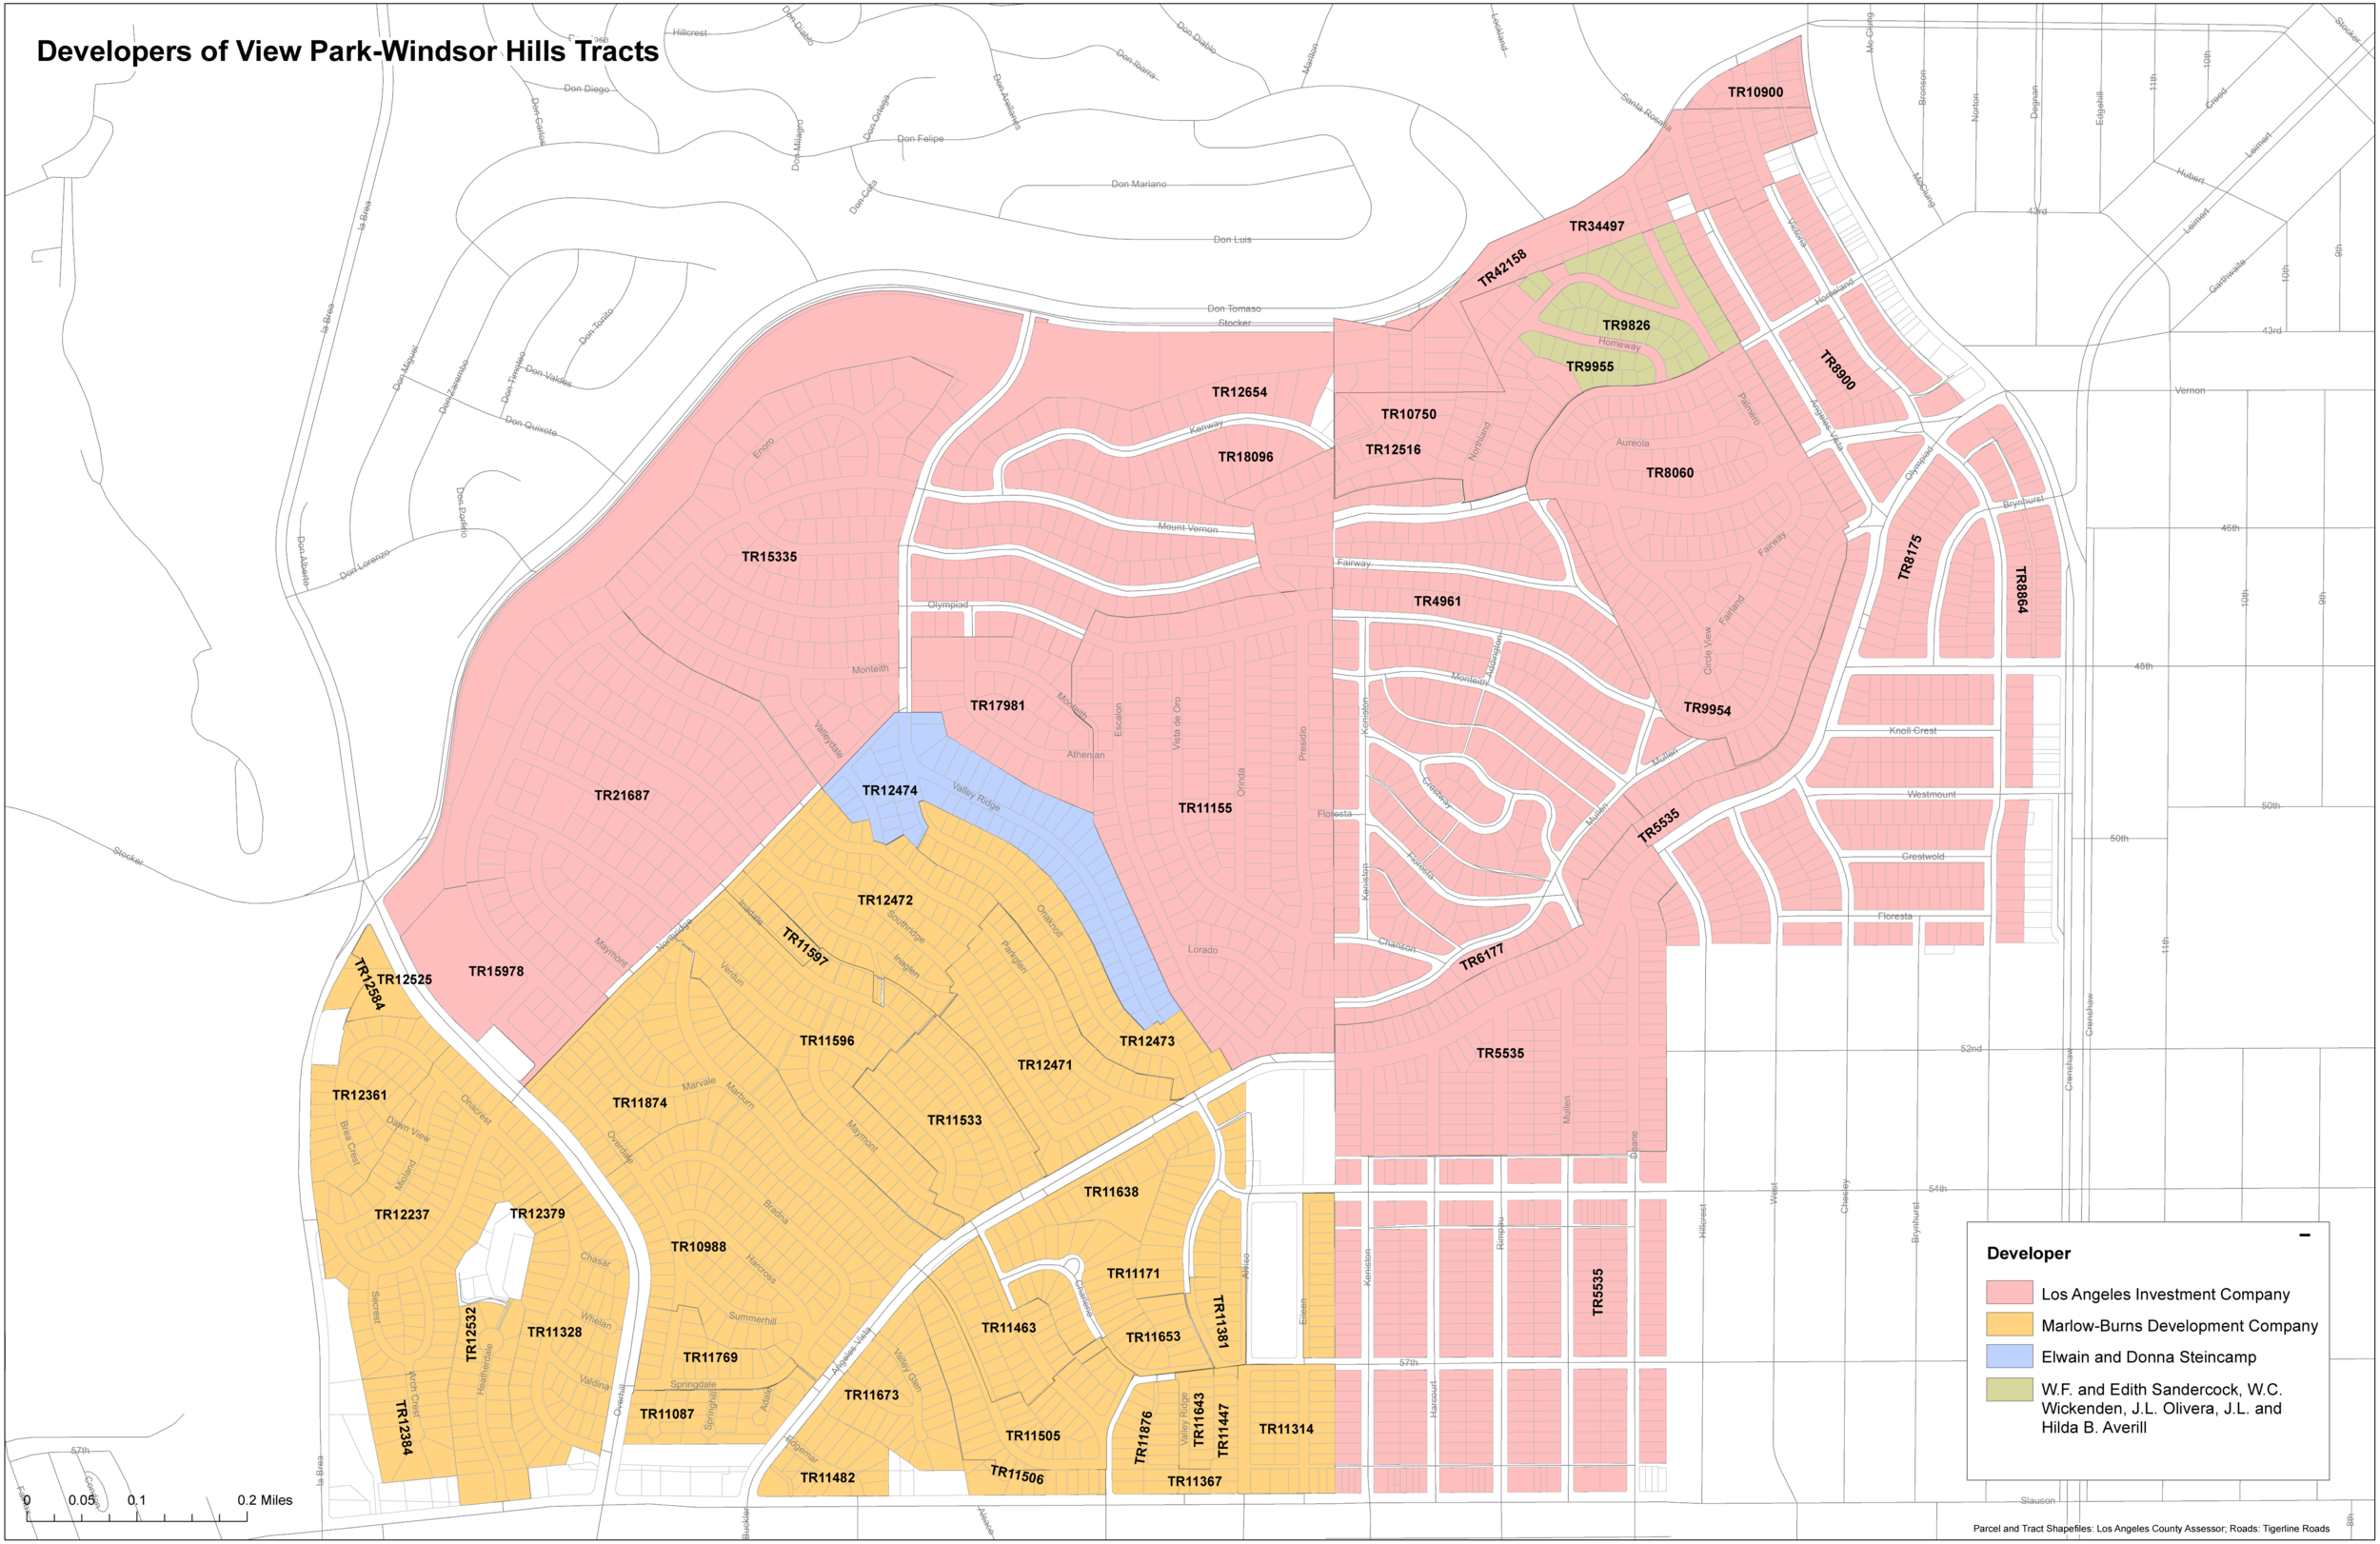 View Park - Tract Map.png